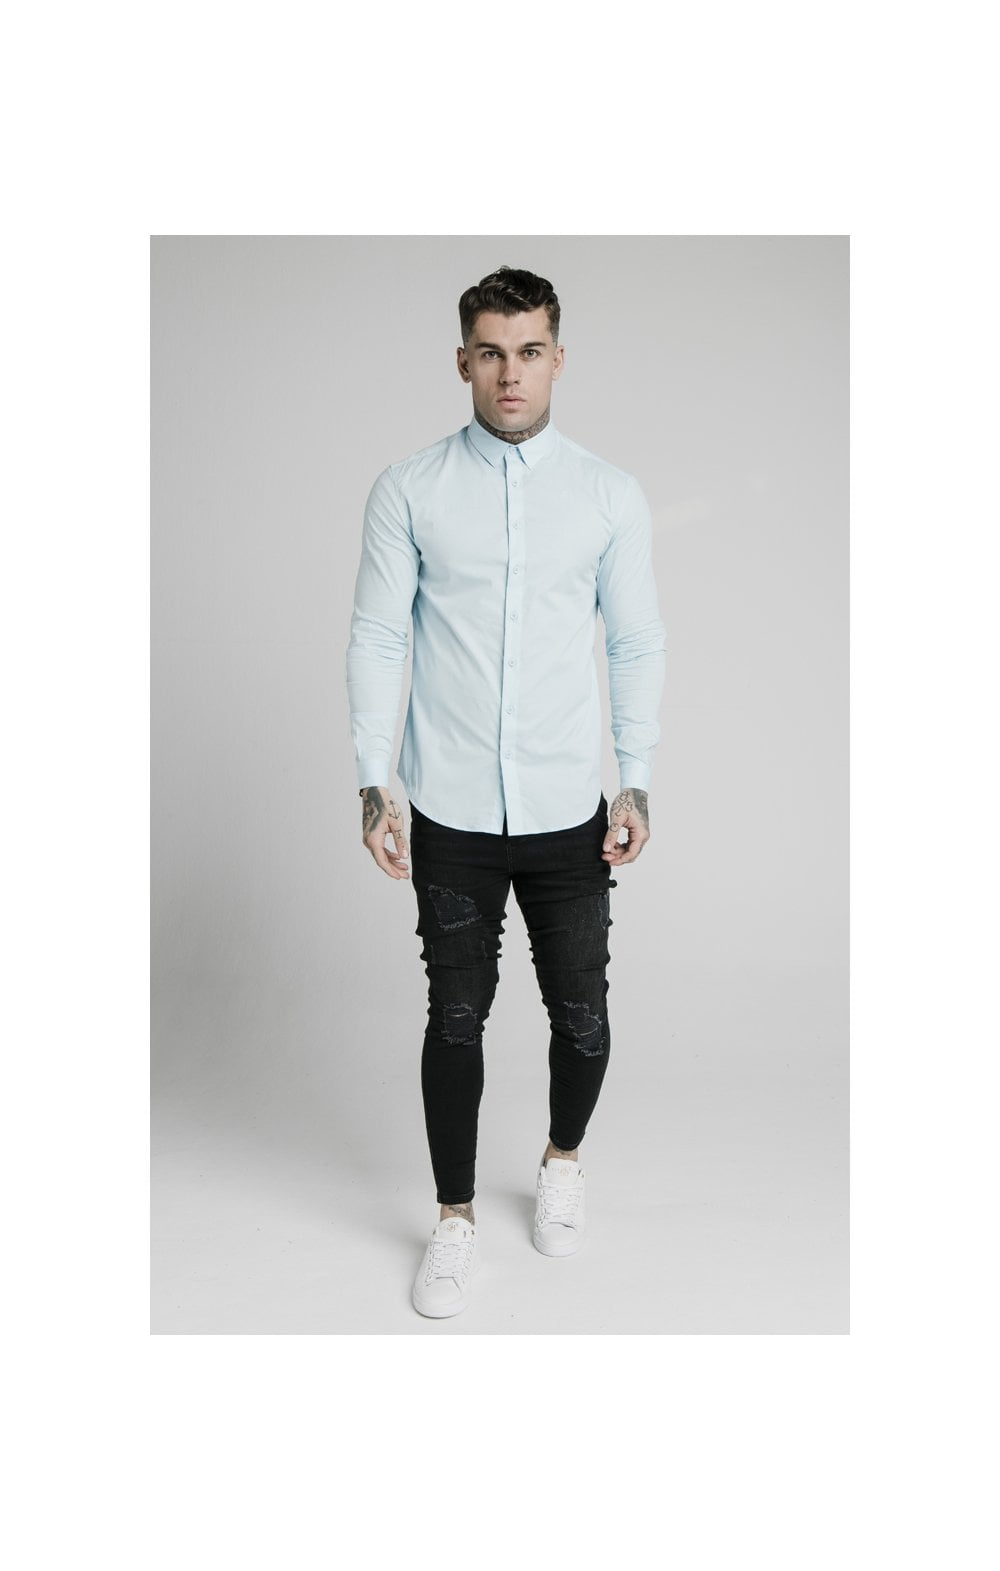 Load image into Gallery viewer, SikSilk L/S Cotton Stretch Shirt - Light Blue (2)